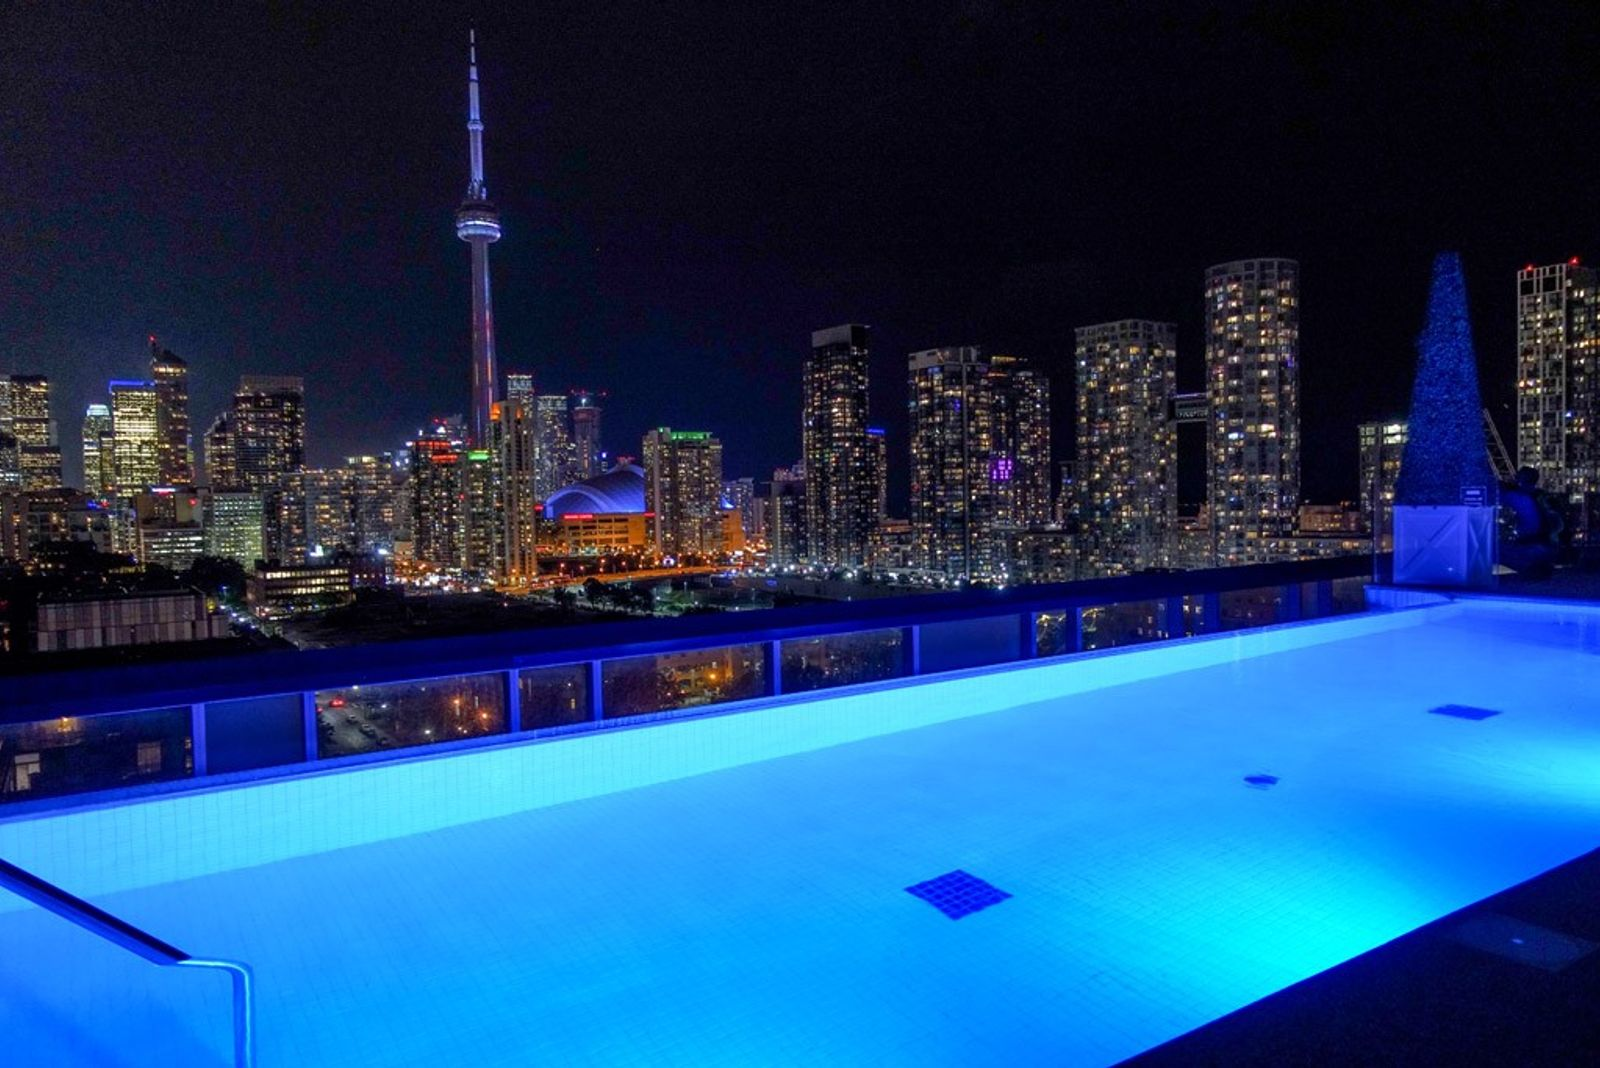 Rooftop Pool bei Nacht